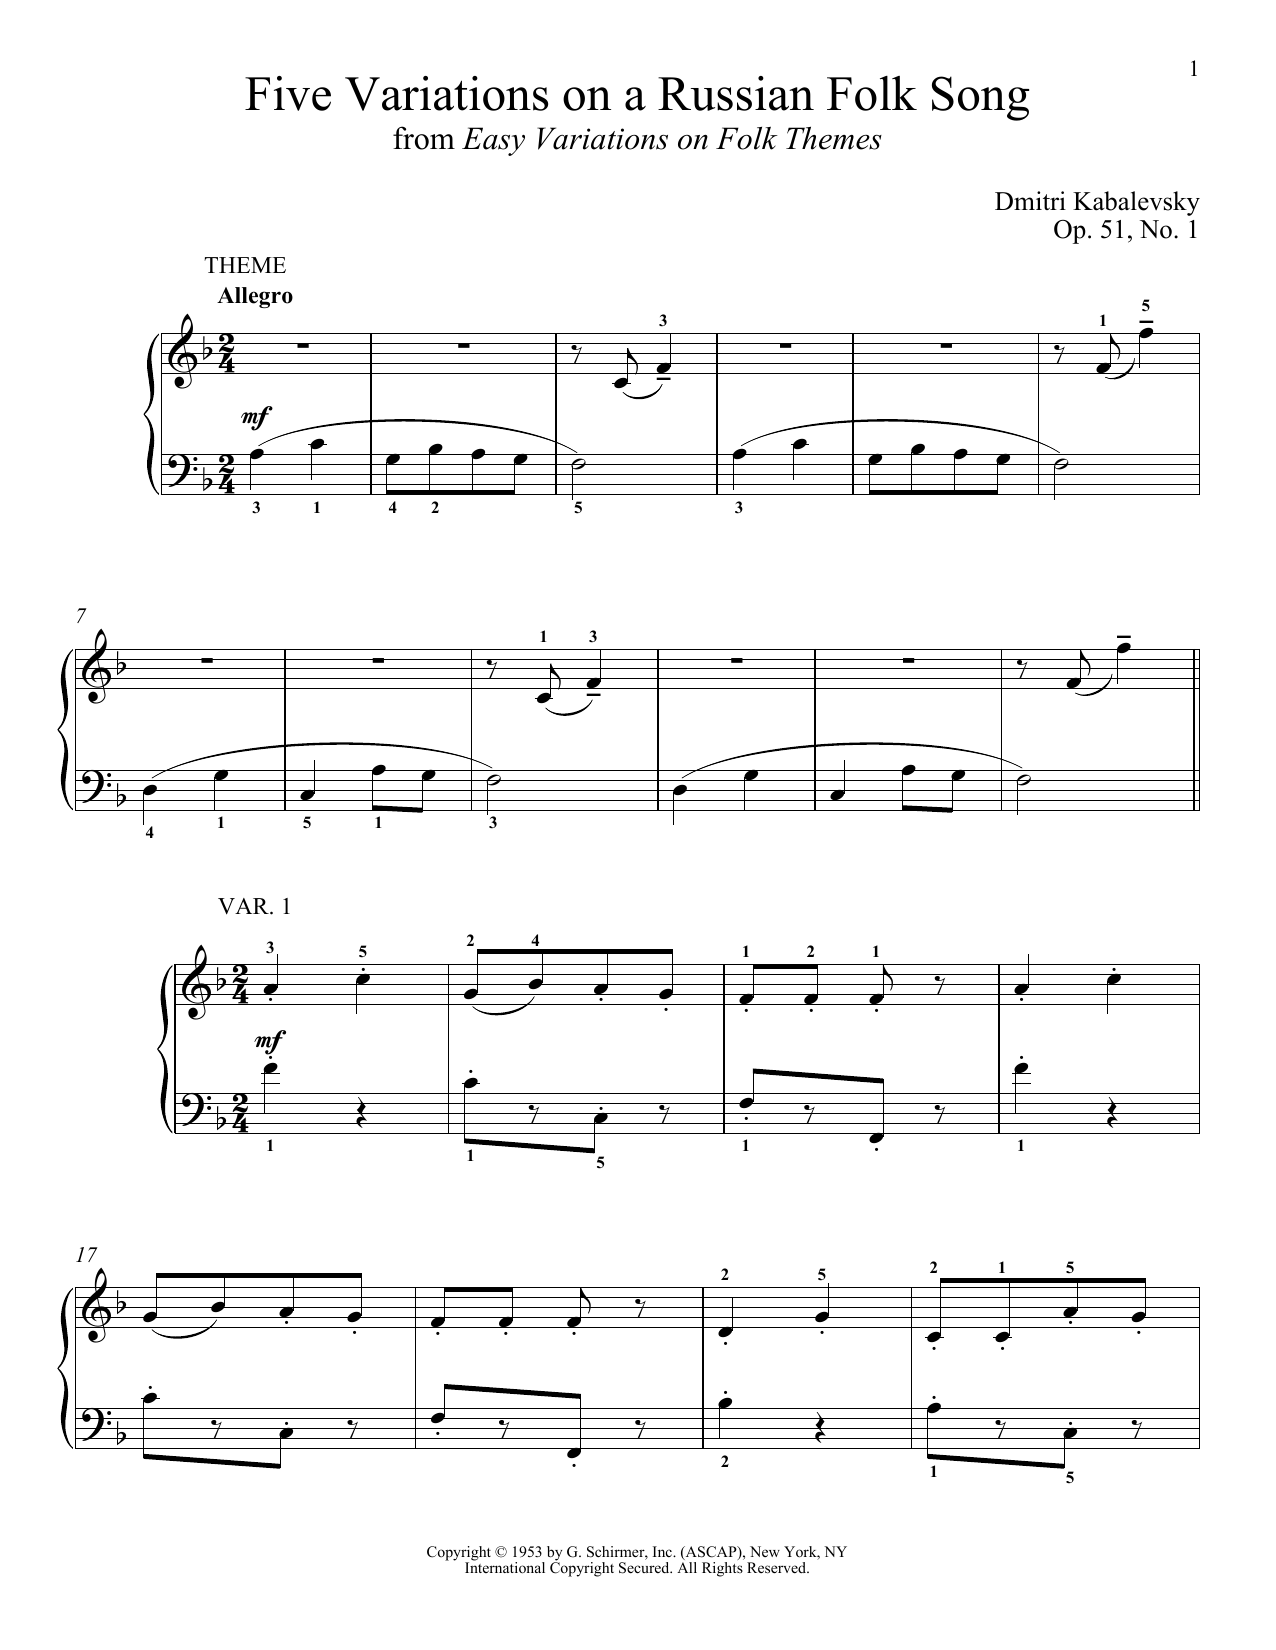 Five Variations On A Russian Folk Song, Op. 51, No. 1 (Piano Solo)